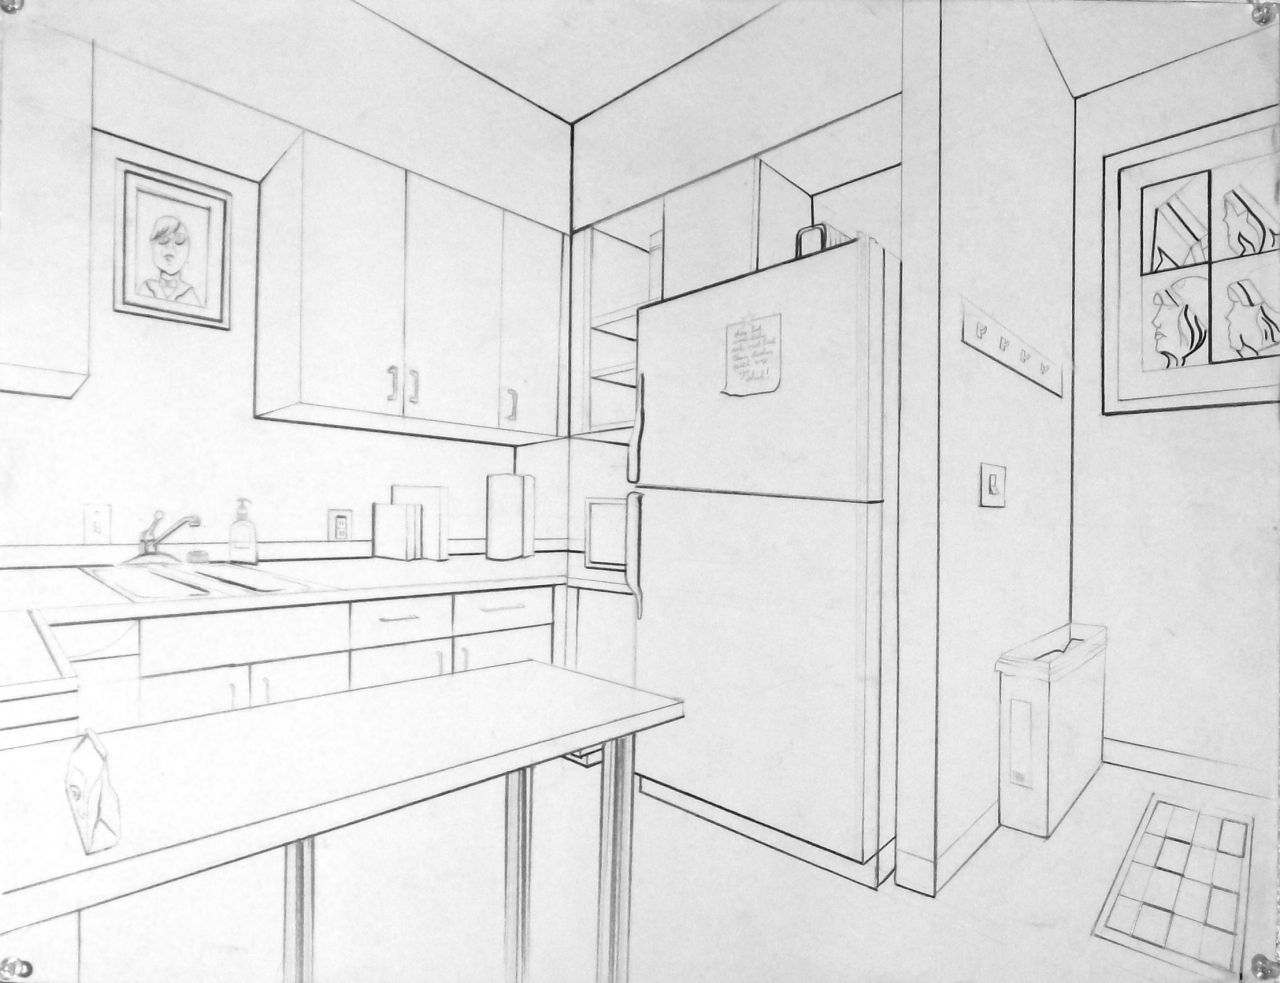 Drawing 2 Two Point Perspective Interior Examples Draw A Corner In The Kitchen Including